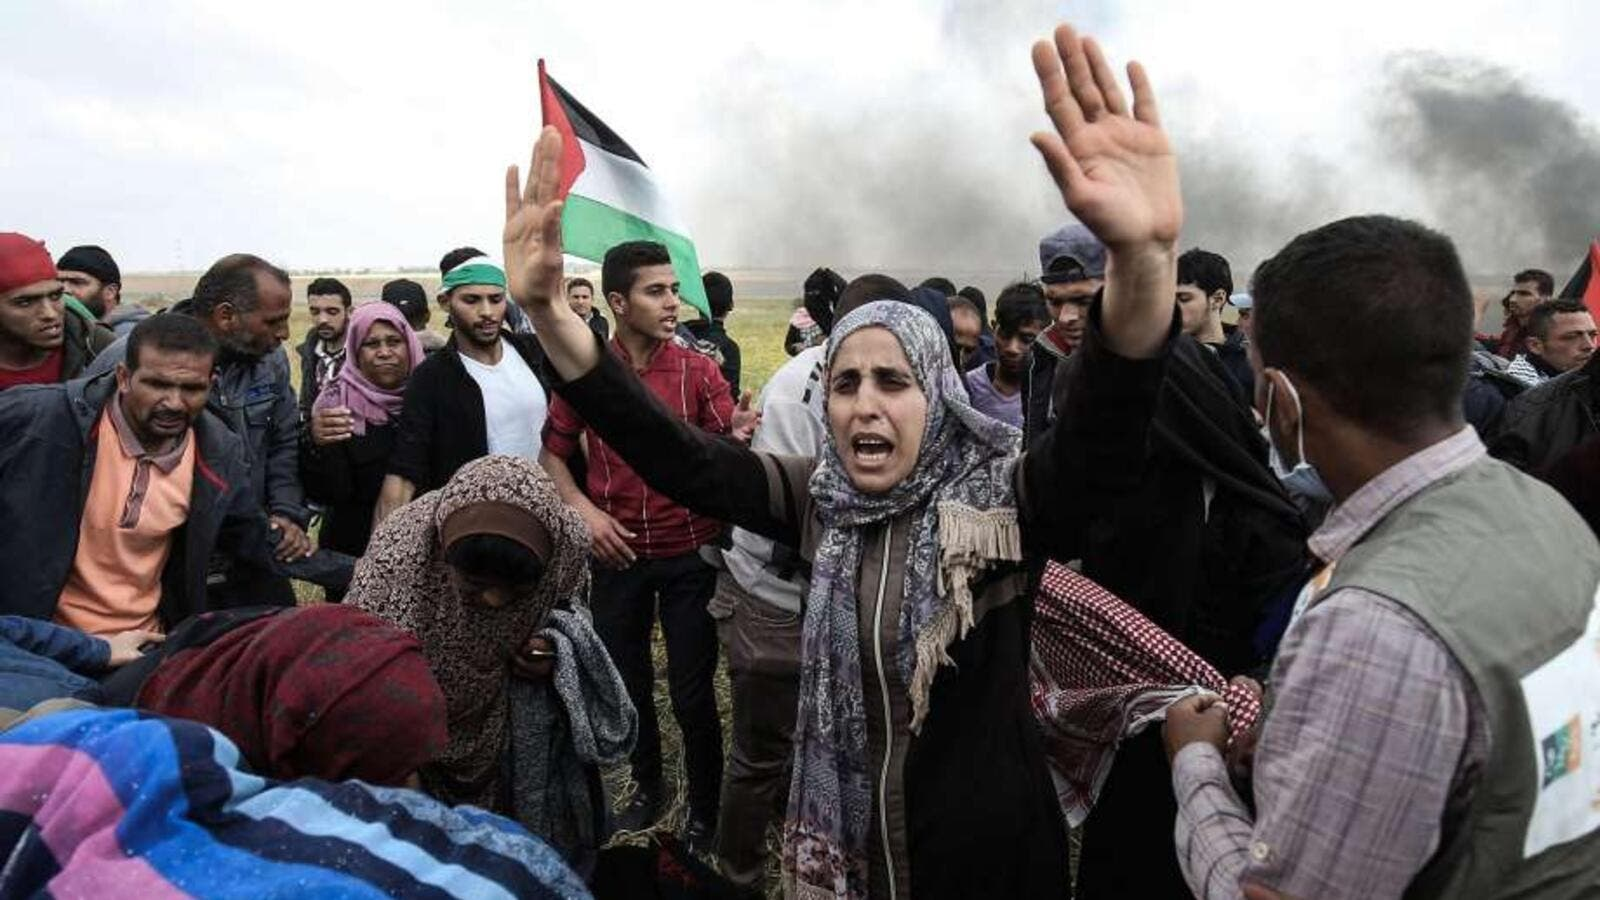 Palestinian demonstrators near the border with Israel (AFP)